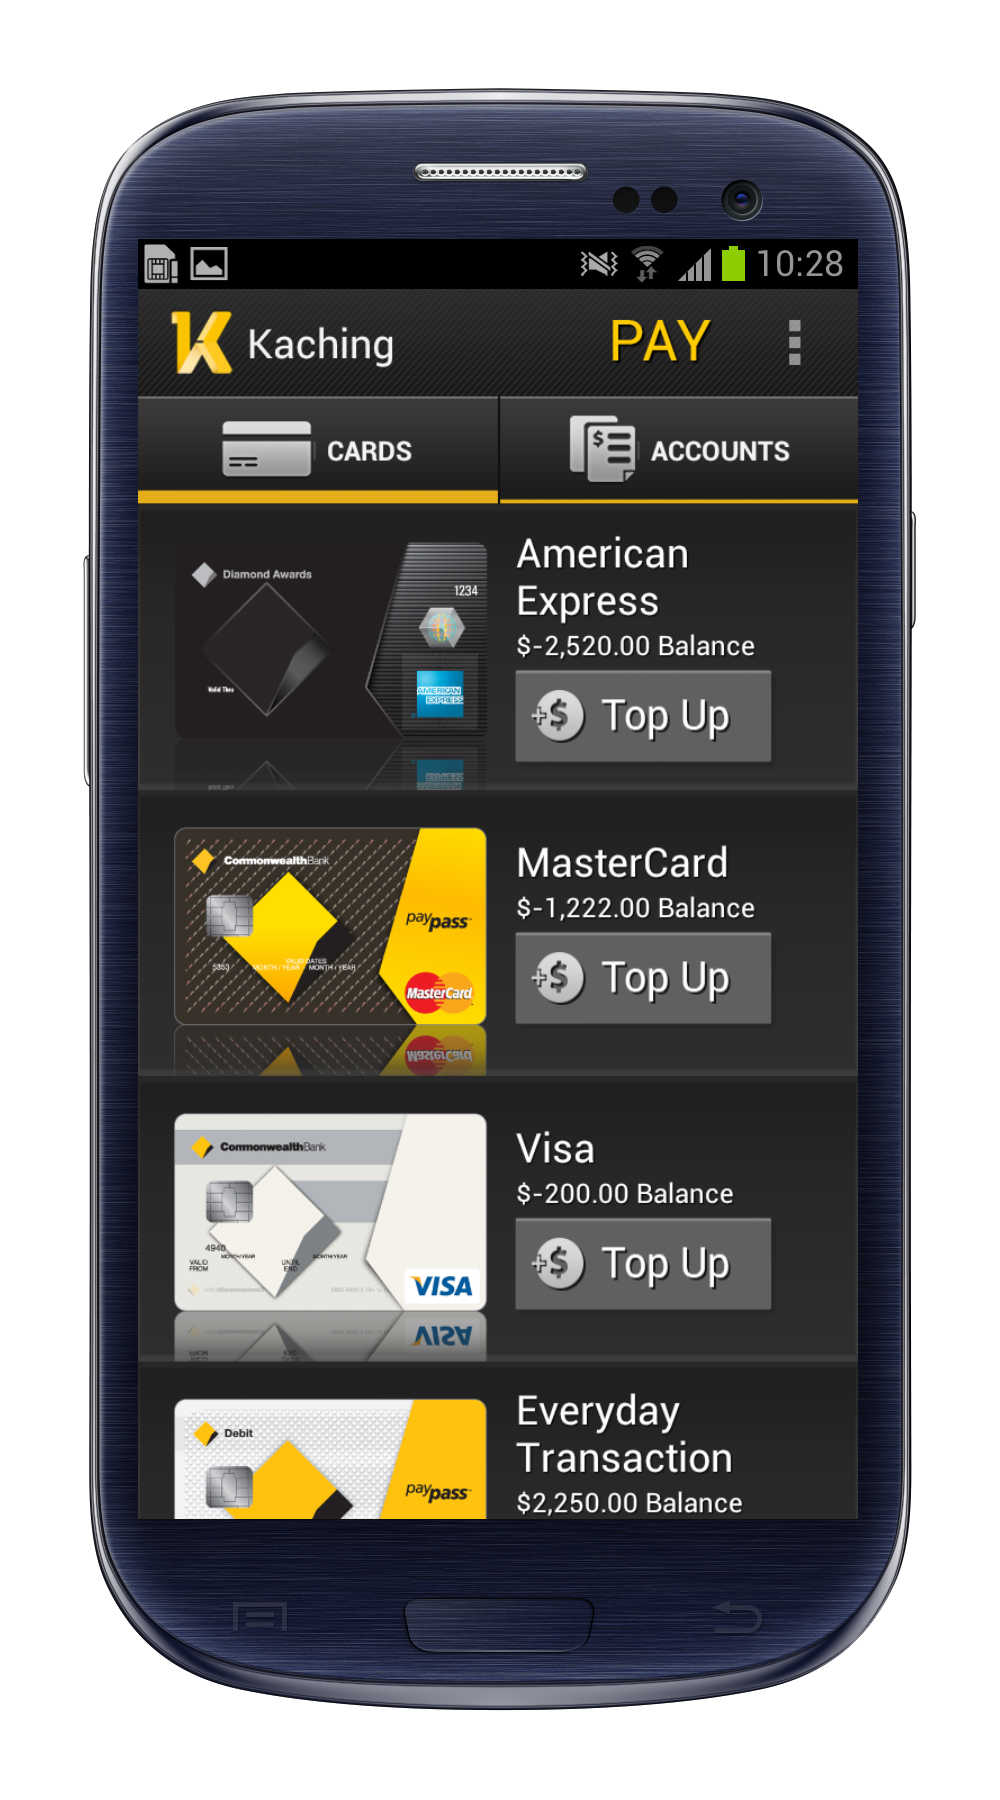 Mobile Banking Android Apps As Important As iPhone iPad Apps [Mobile Banking]